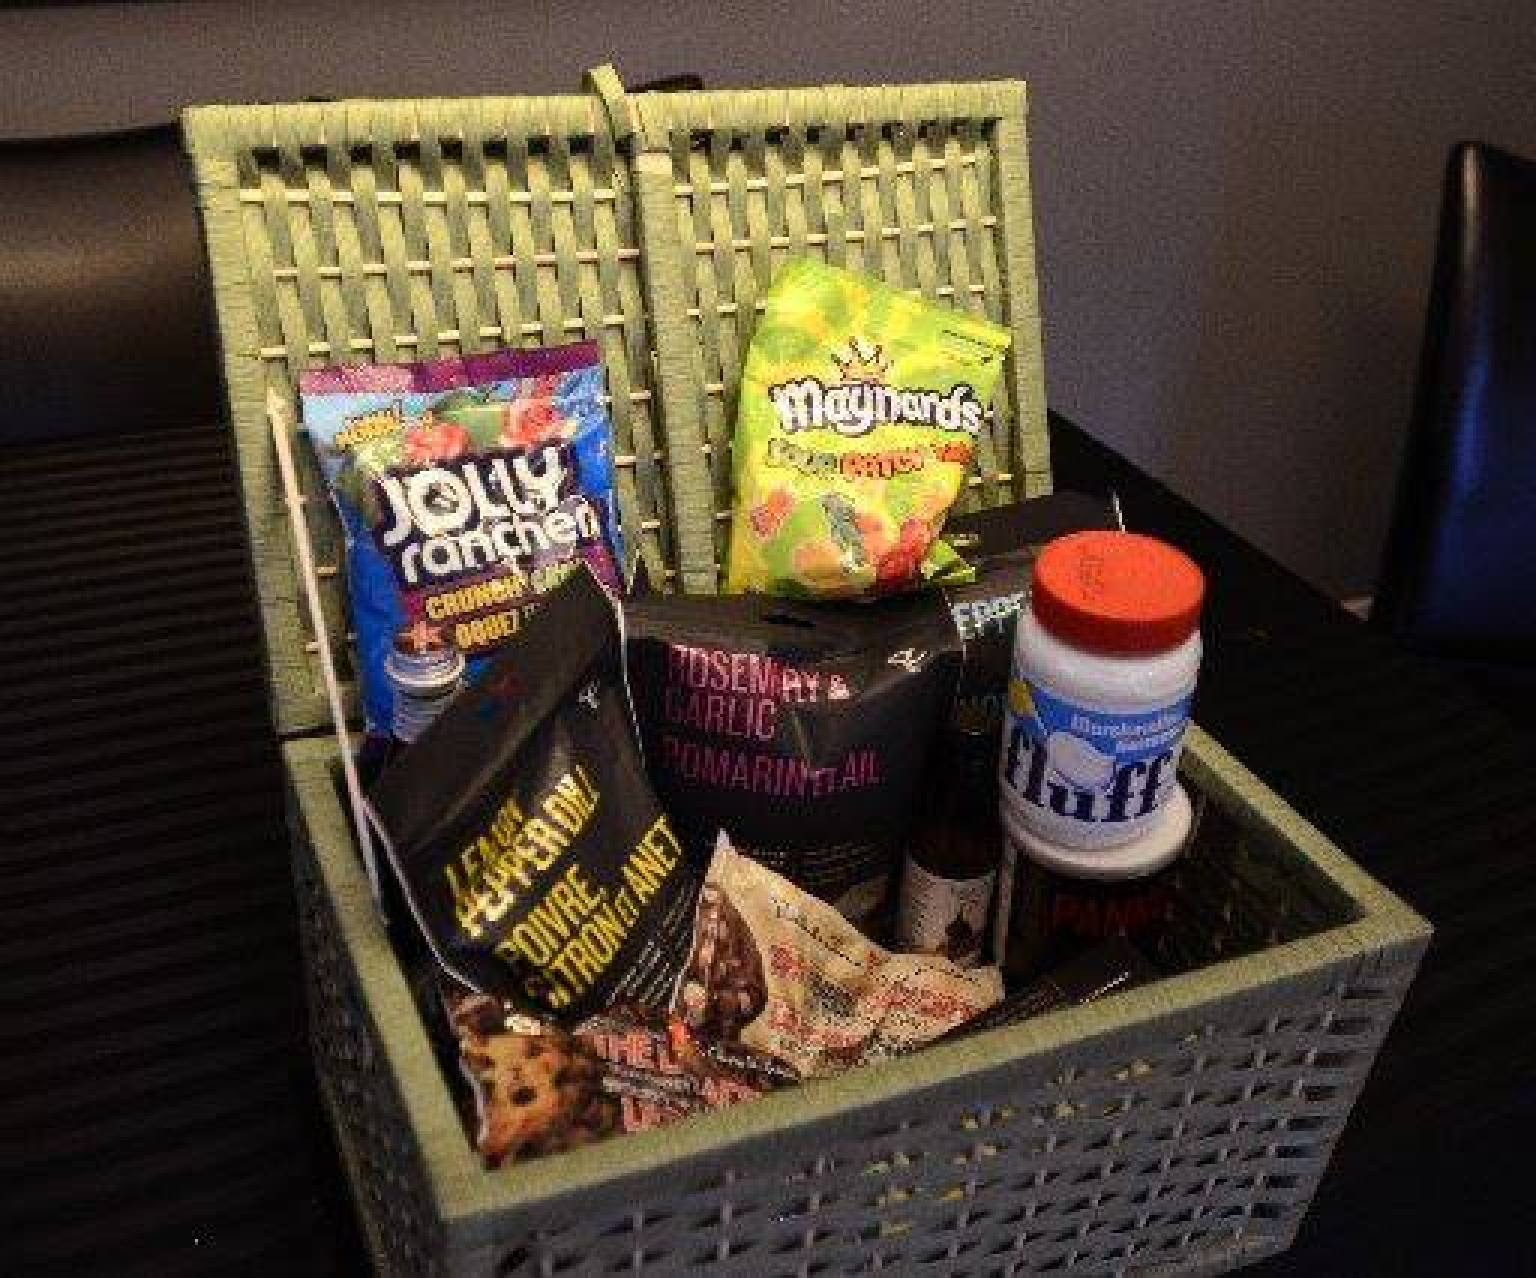 Wedding Gift Basket Uk : Wedding Hamper Sparks Furious Row As Bride Complains About Cheap ...